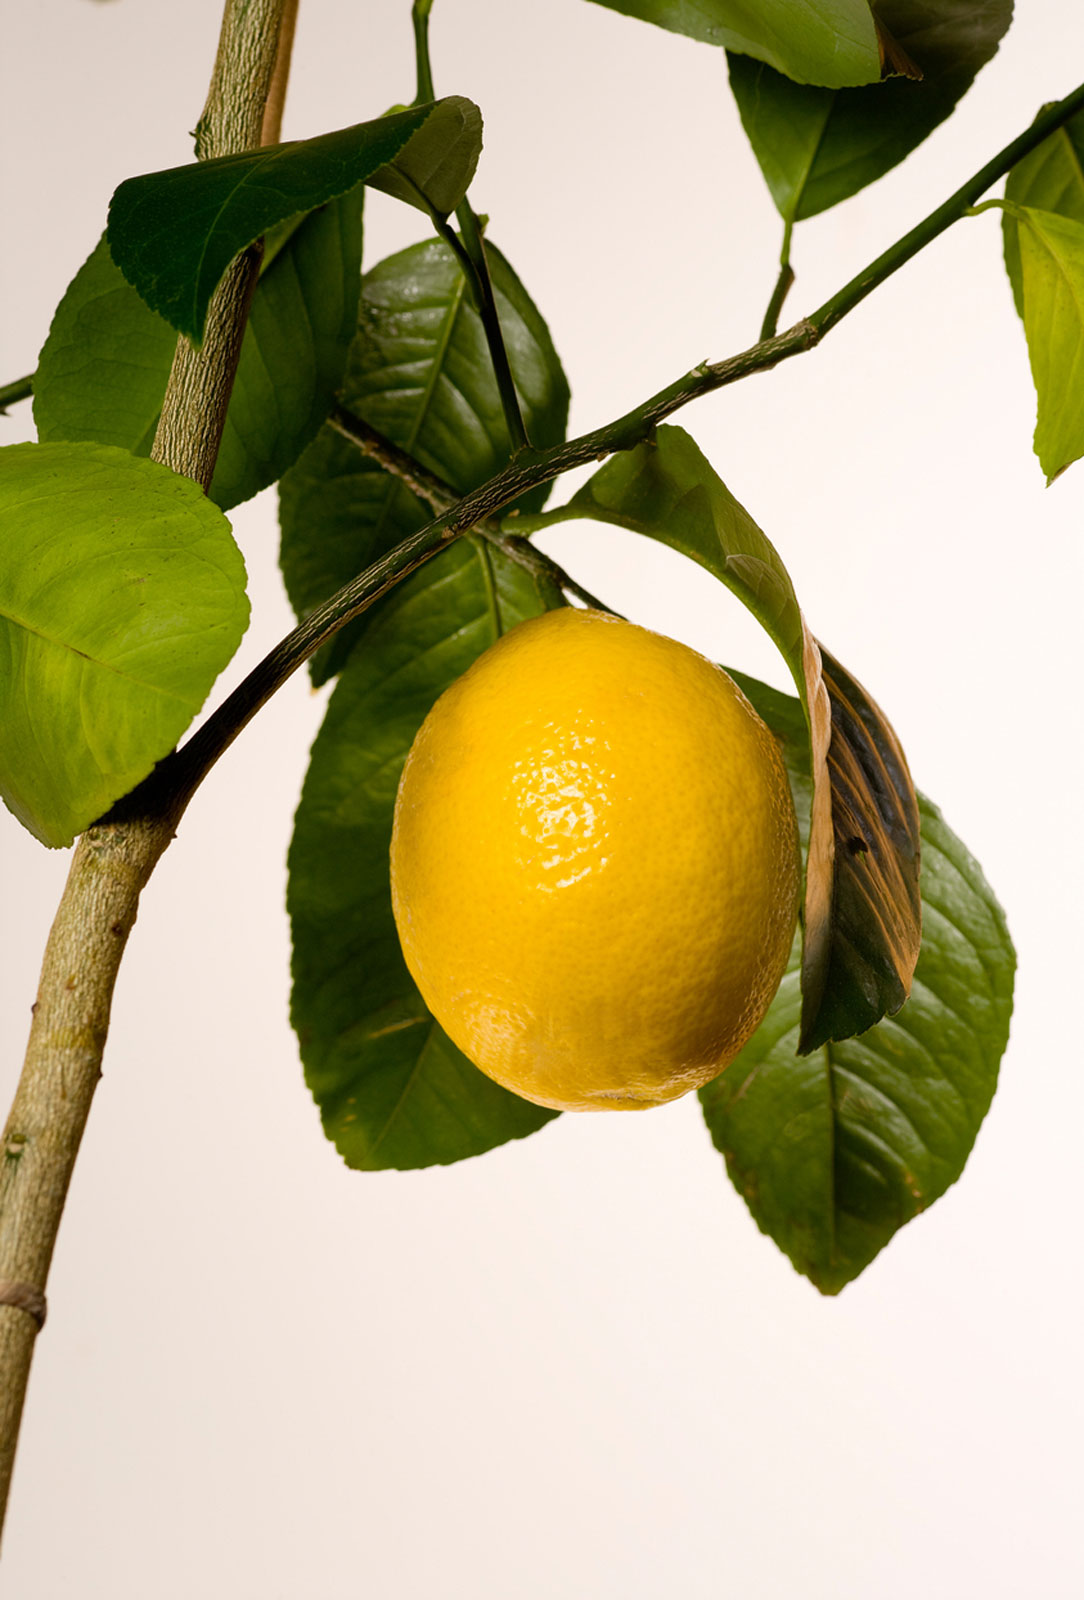 Meyer Lemon Growing Tips On Caring For A Meyer Lemon Tree